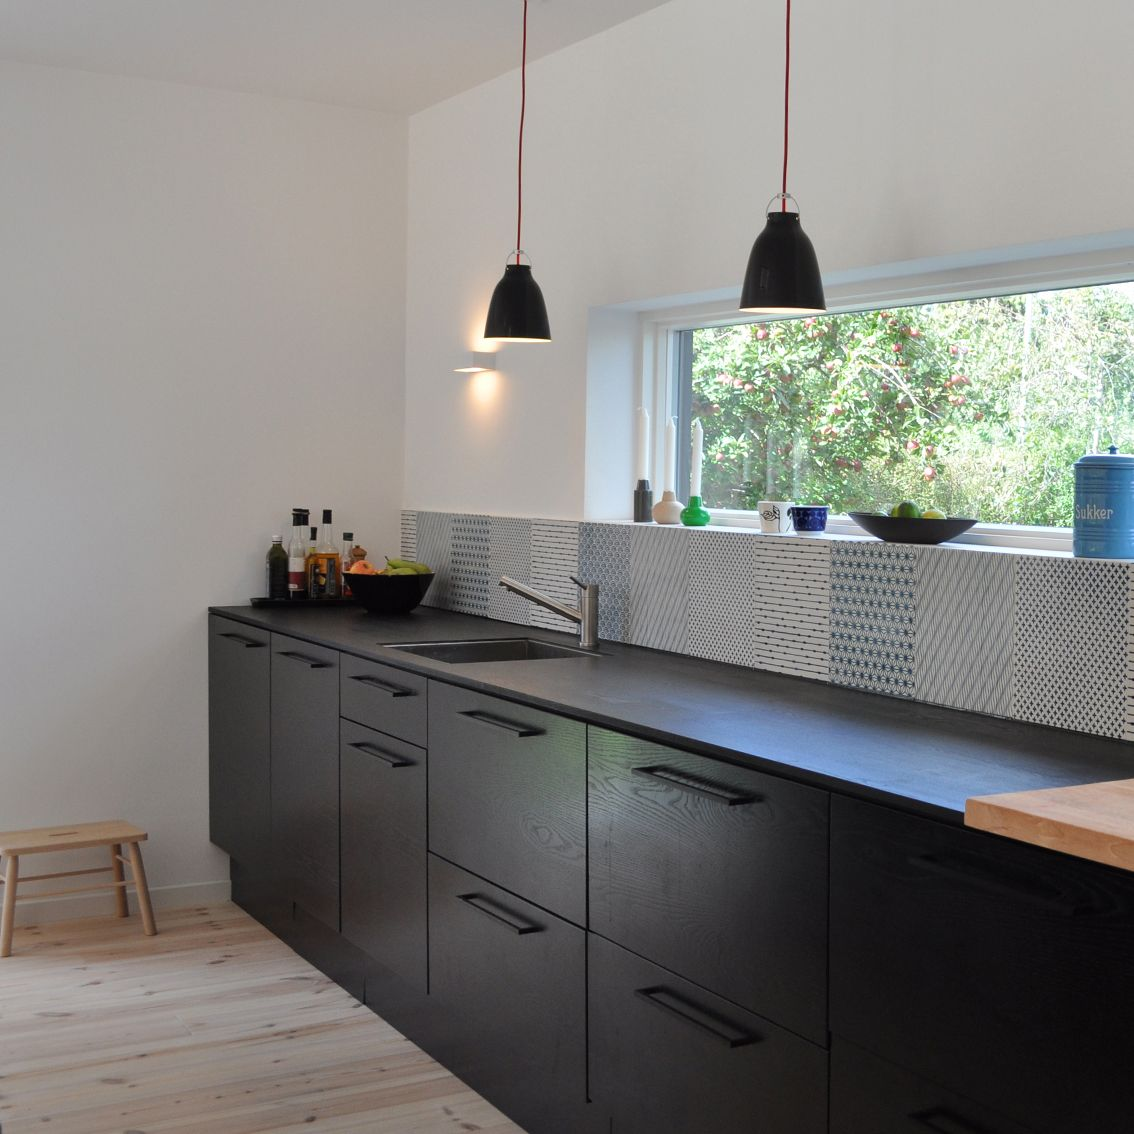 Choosing Best Kitchen Tile Ideas. Black furniture and white contrasting walls